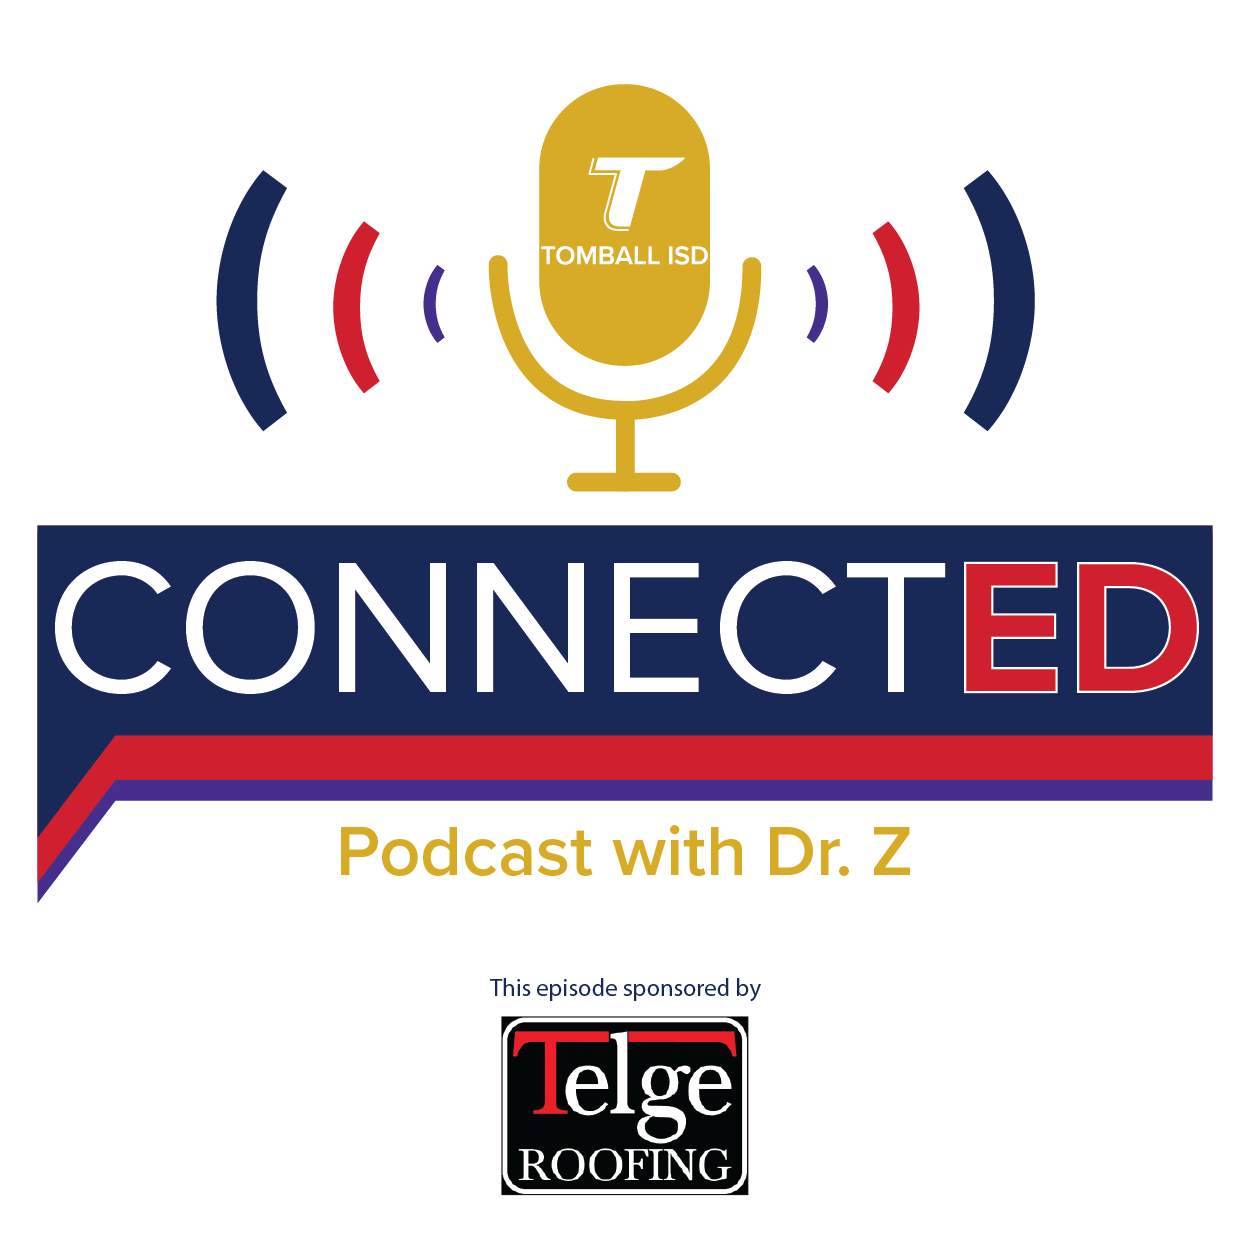 ConnectED with Dr. Z sponsored by Telge Roofing